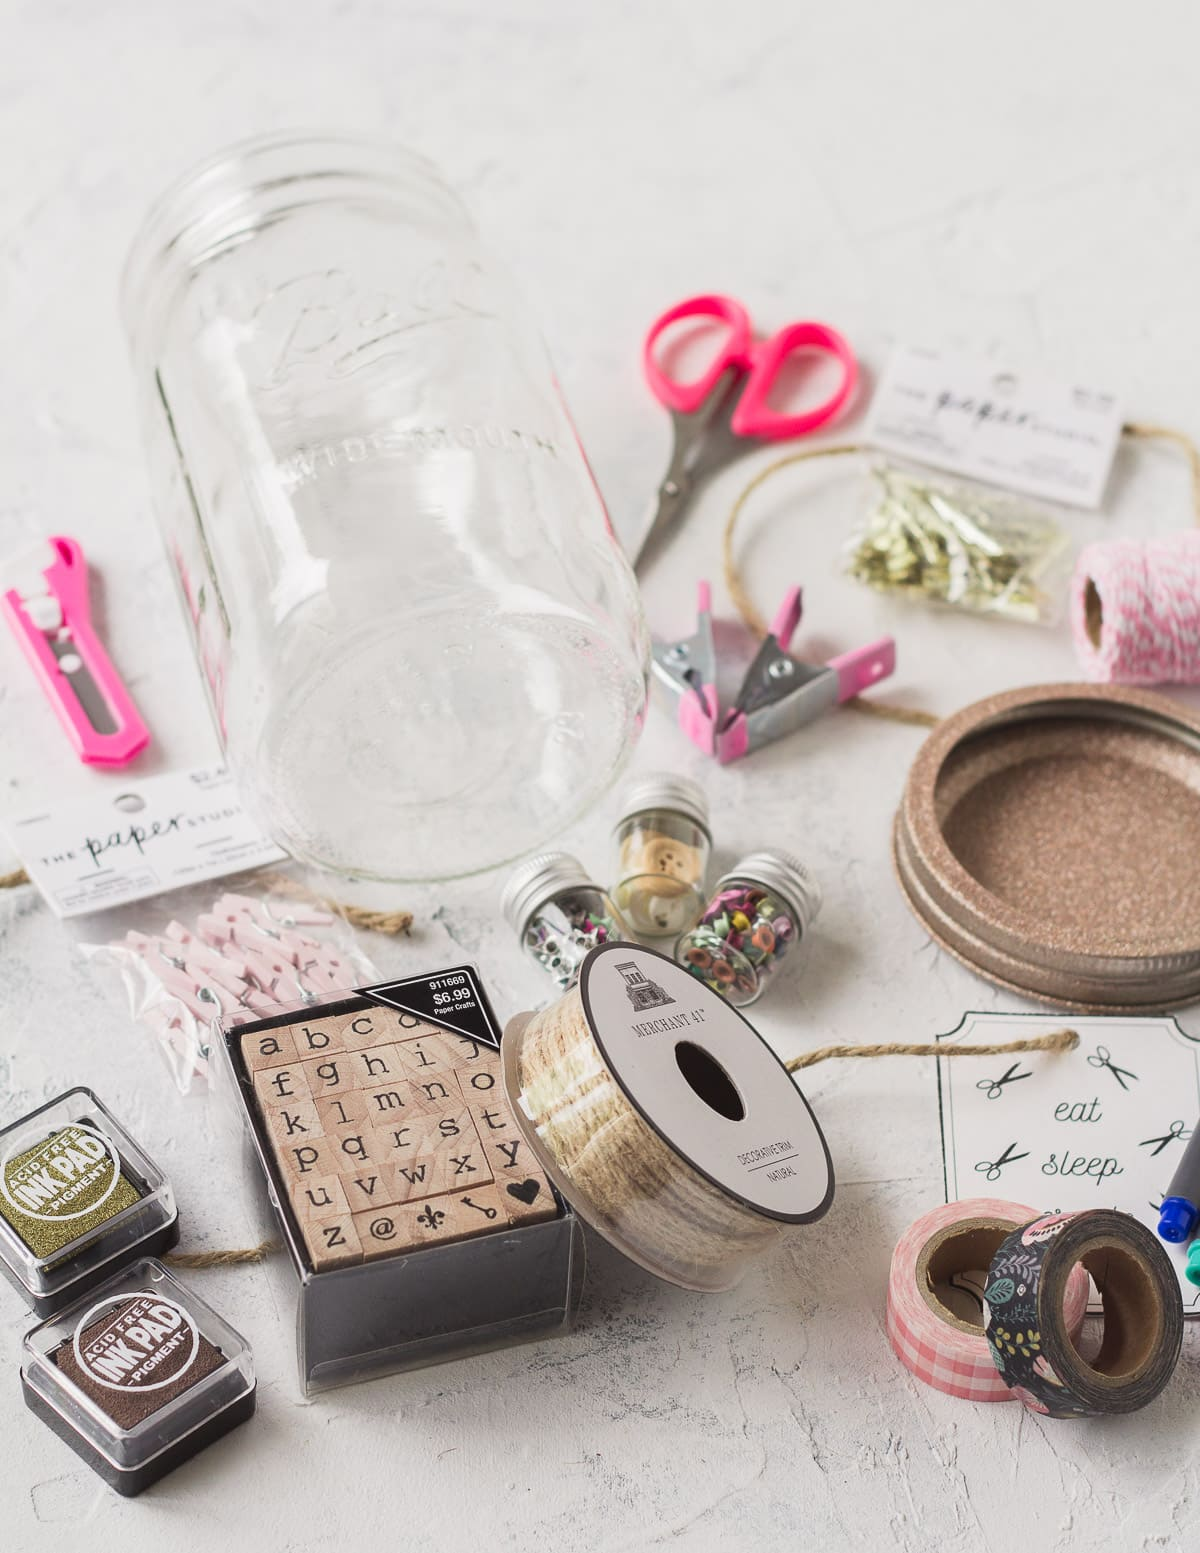 Various craft supplies including twine, rubber stamps and ink, washi tape and more.